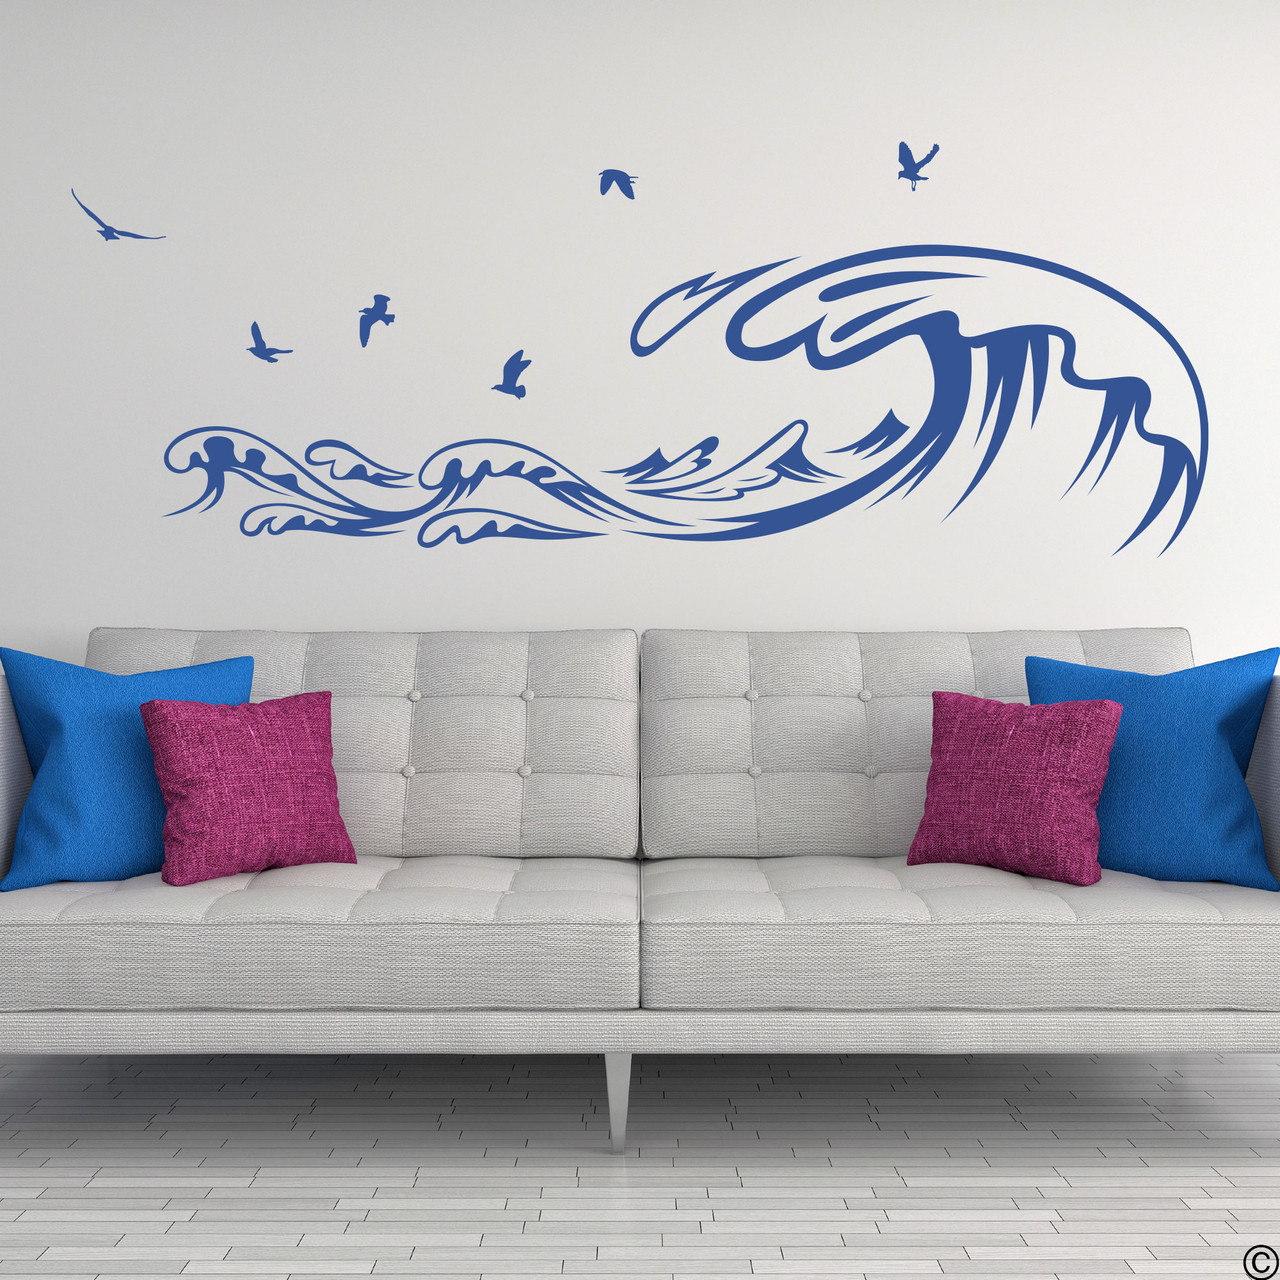 The Waves and Seagulls wall decal shown here in the limited edition denim vinyl color.